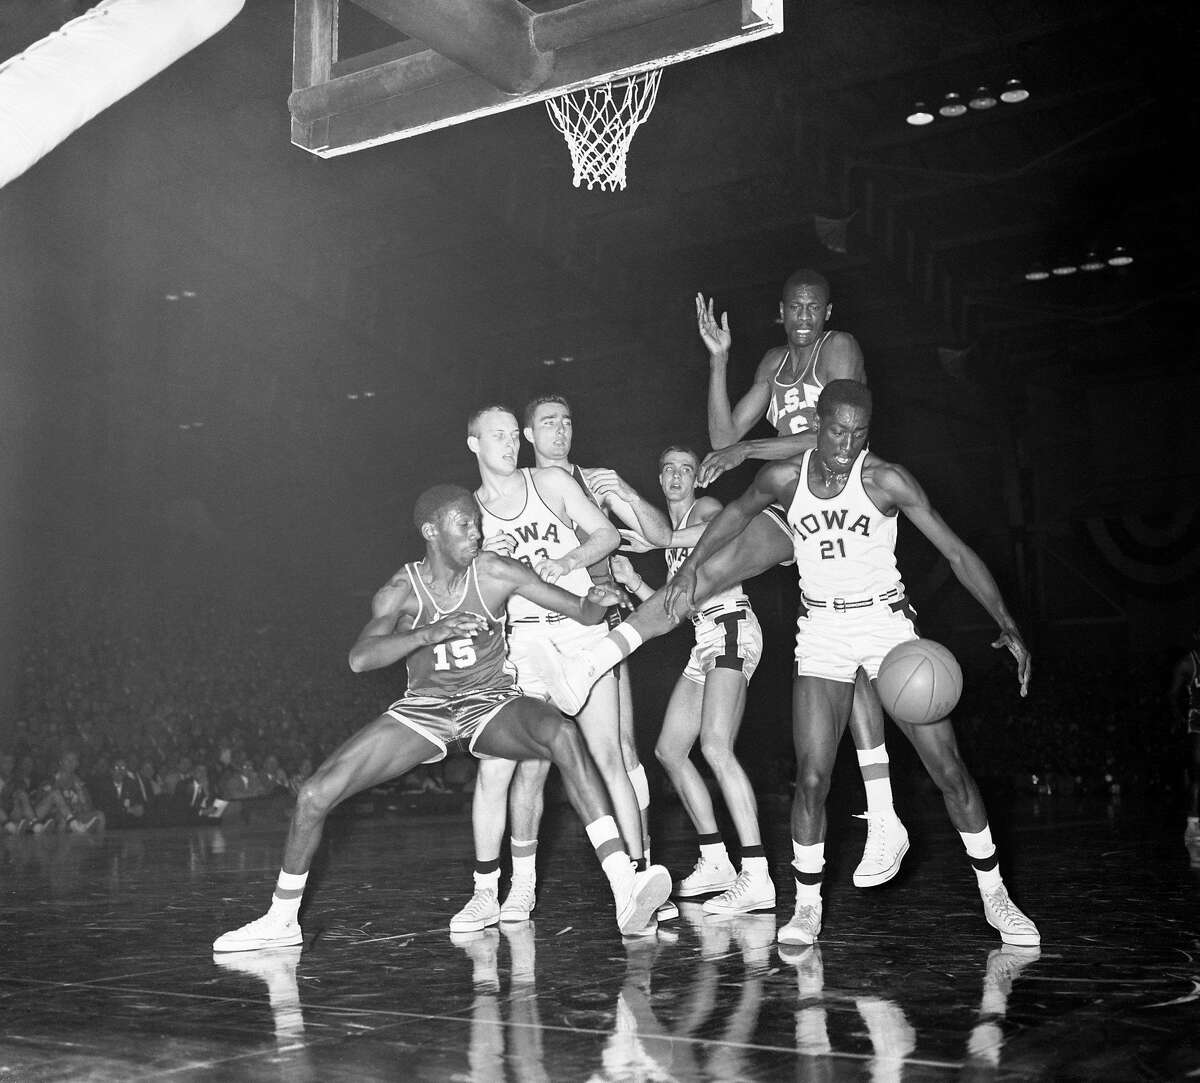 Iowa Hawkeyes and San Francisco Dons have varied expressions as they watch the ball fly loose during tussle under the basket in the first half of their title game in the NCAA tournament on March 23, 1956 in Evanston, Illinois. L to R: Gene Brown, Bill Schoof, Mike Farmer, Bill Logan, Bill Russell, and Carl Cain.